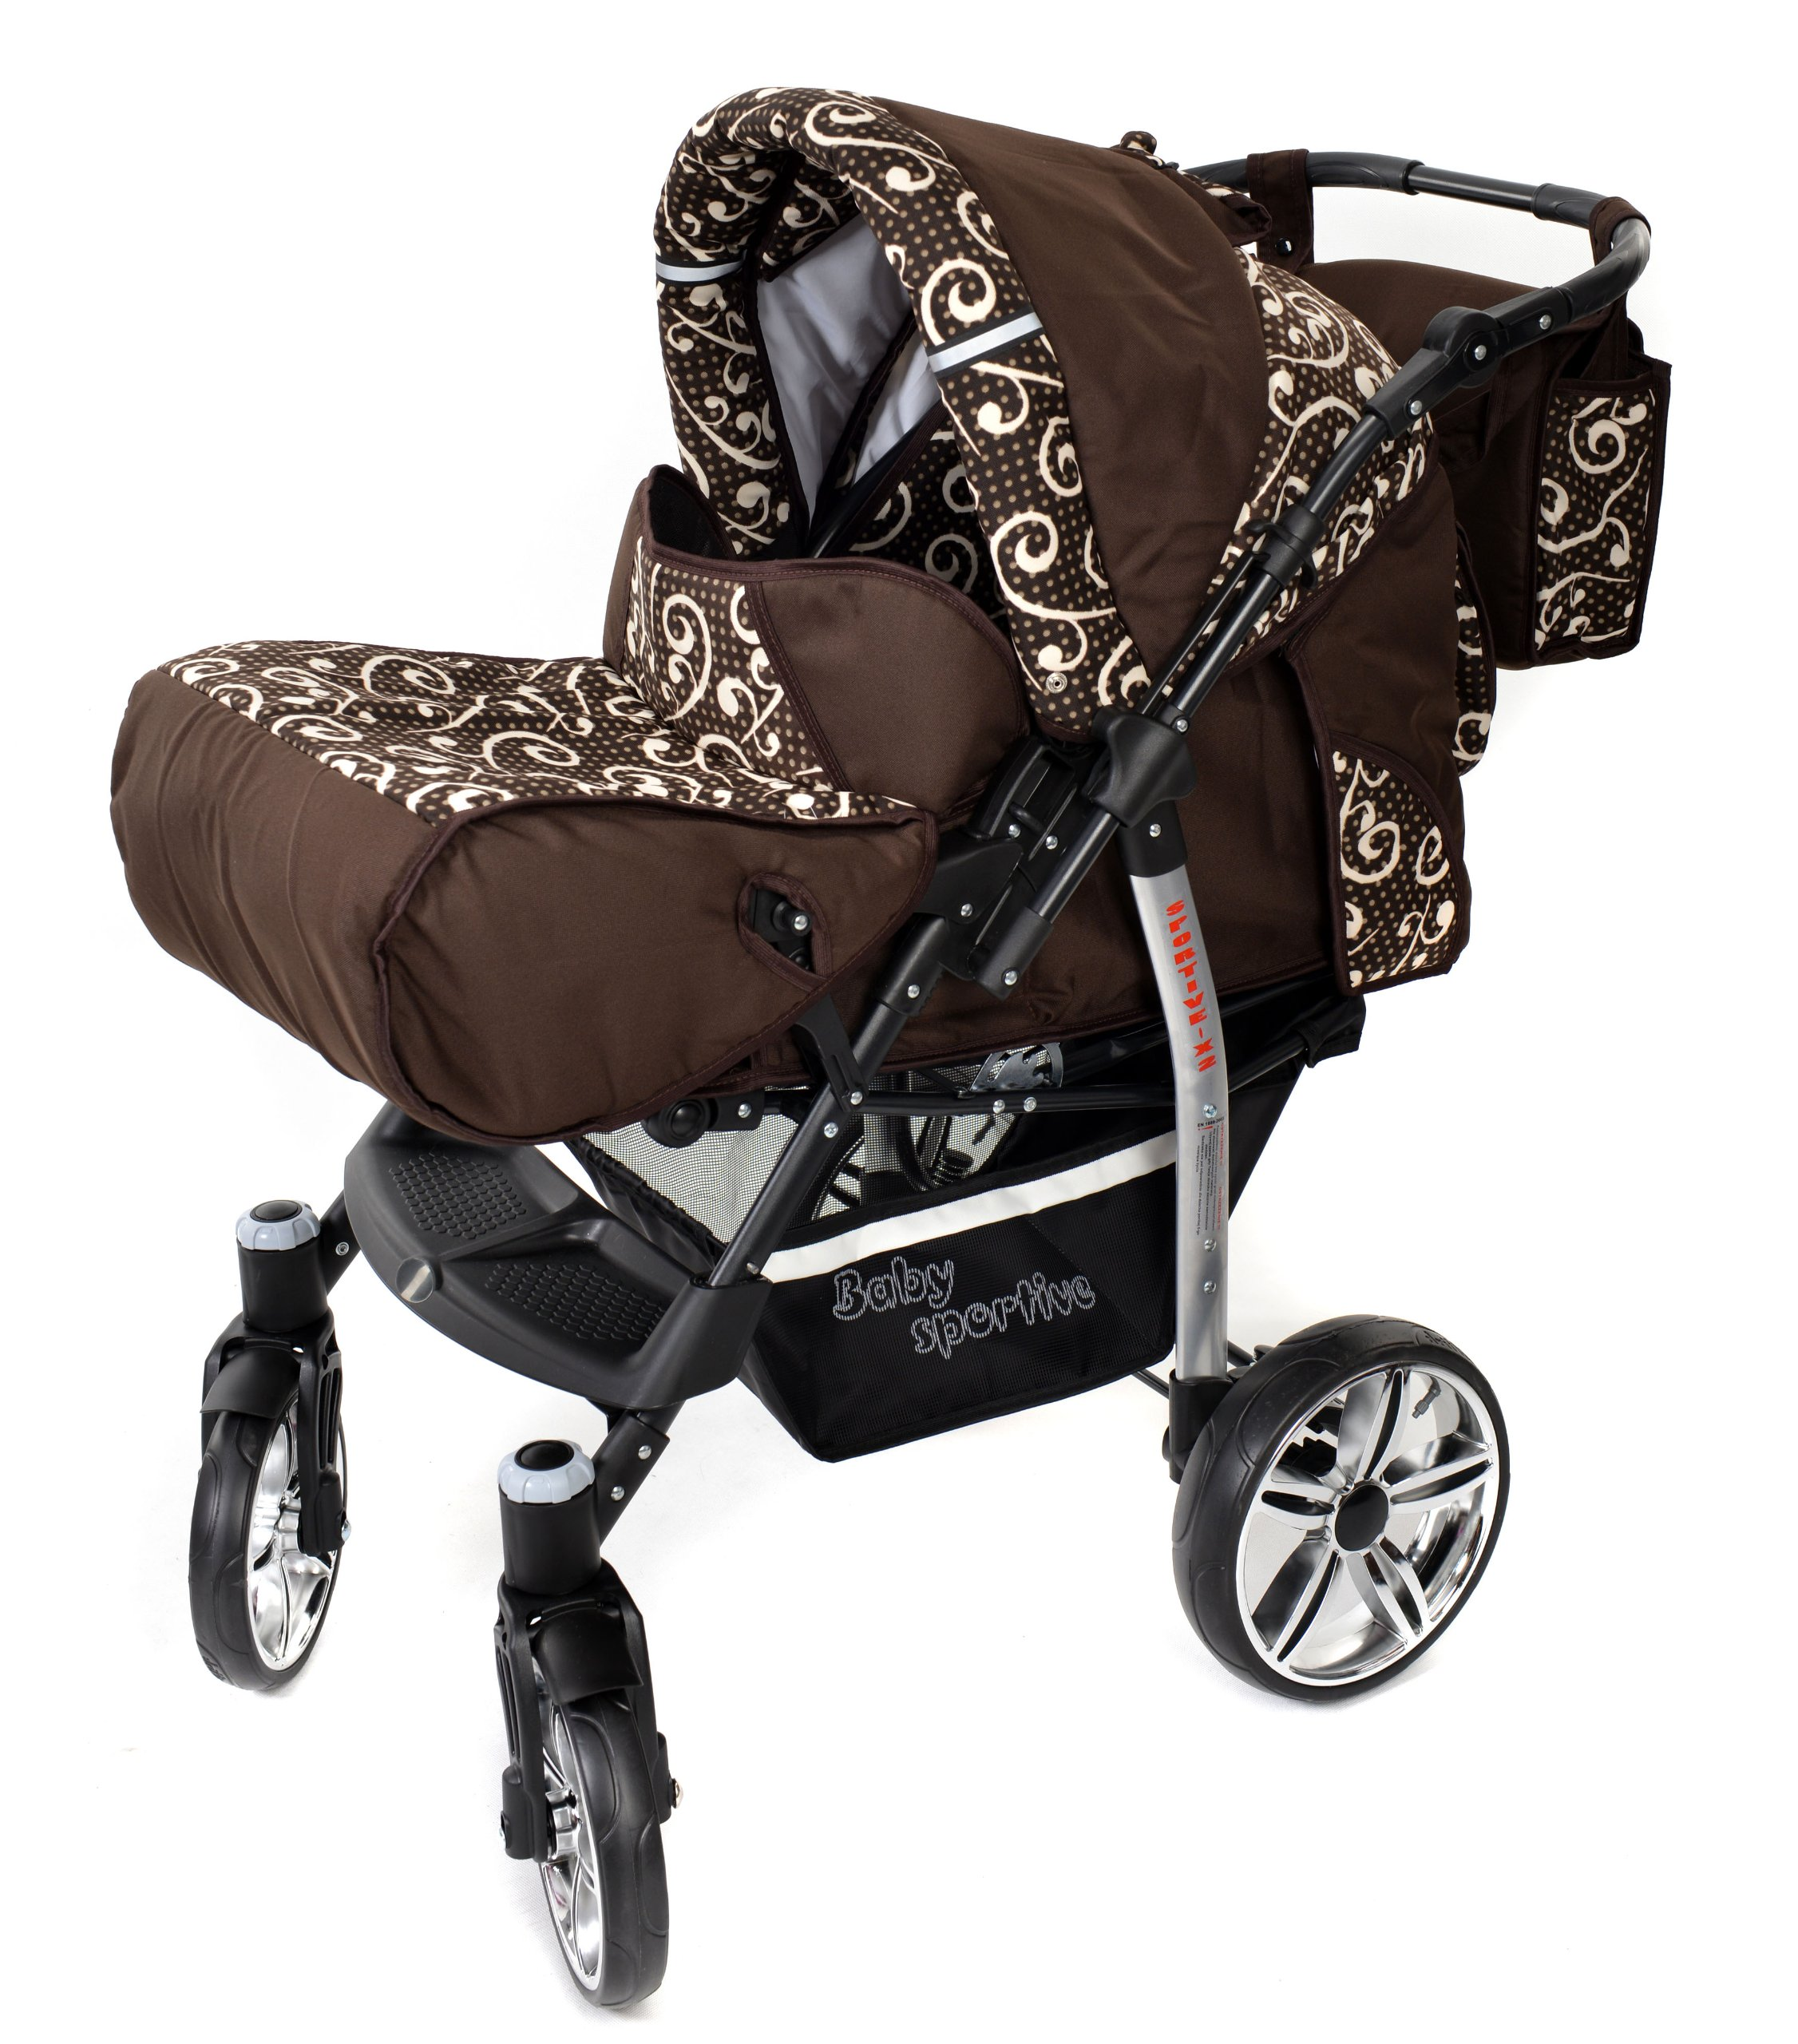 Sportive X2, 3-in-1 Travel System incl. Baby Pram with Swivel Wheels, Car Seat, Pushchair & Accessories (3-in-1 Travel System, Brown & Wawy Lines)  3 in 1 Travel System All in One Set - Pram, Car Carrier Seat and Sport Buggy + Accessories: carrier bag, rain protection, mosquito net, changing mat, removable bottle holder and removable tray for your child's bits and pieces Suitable from birth, Easy Quick Folding System; Large storage basket; Turnable handle bar that allows to face or rear the drive direction; Quick release rear wheels for easy cleaning after muddy walks Front lockable 360o swivel wheels for manoeuvrability , Small sized when folded, fits into many small car trunks, Carry-cot with a removable hood, Reflective elements for better visibility 3